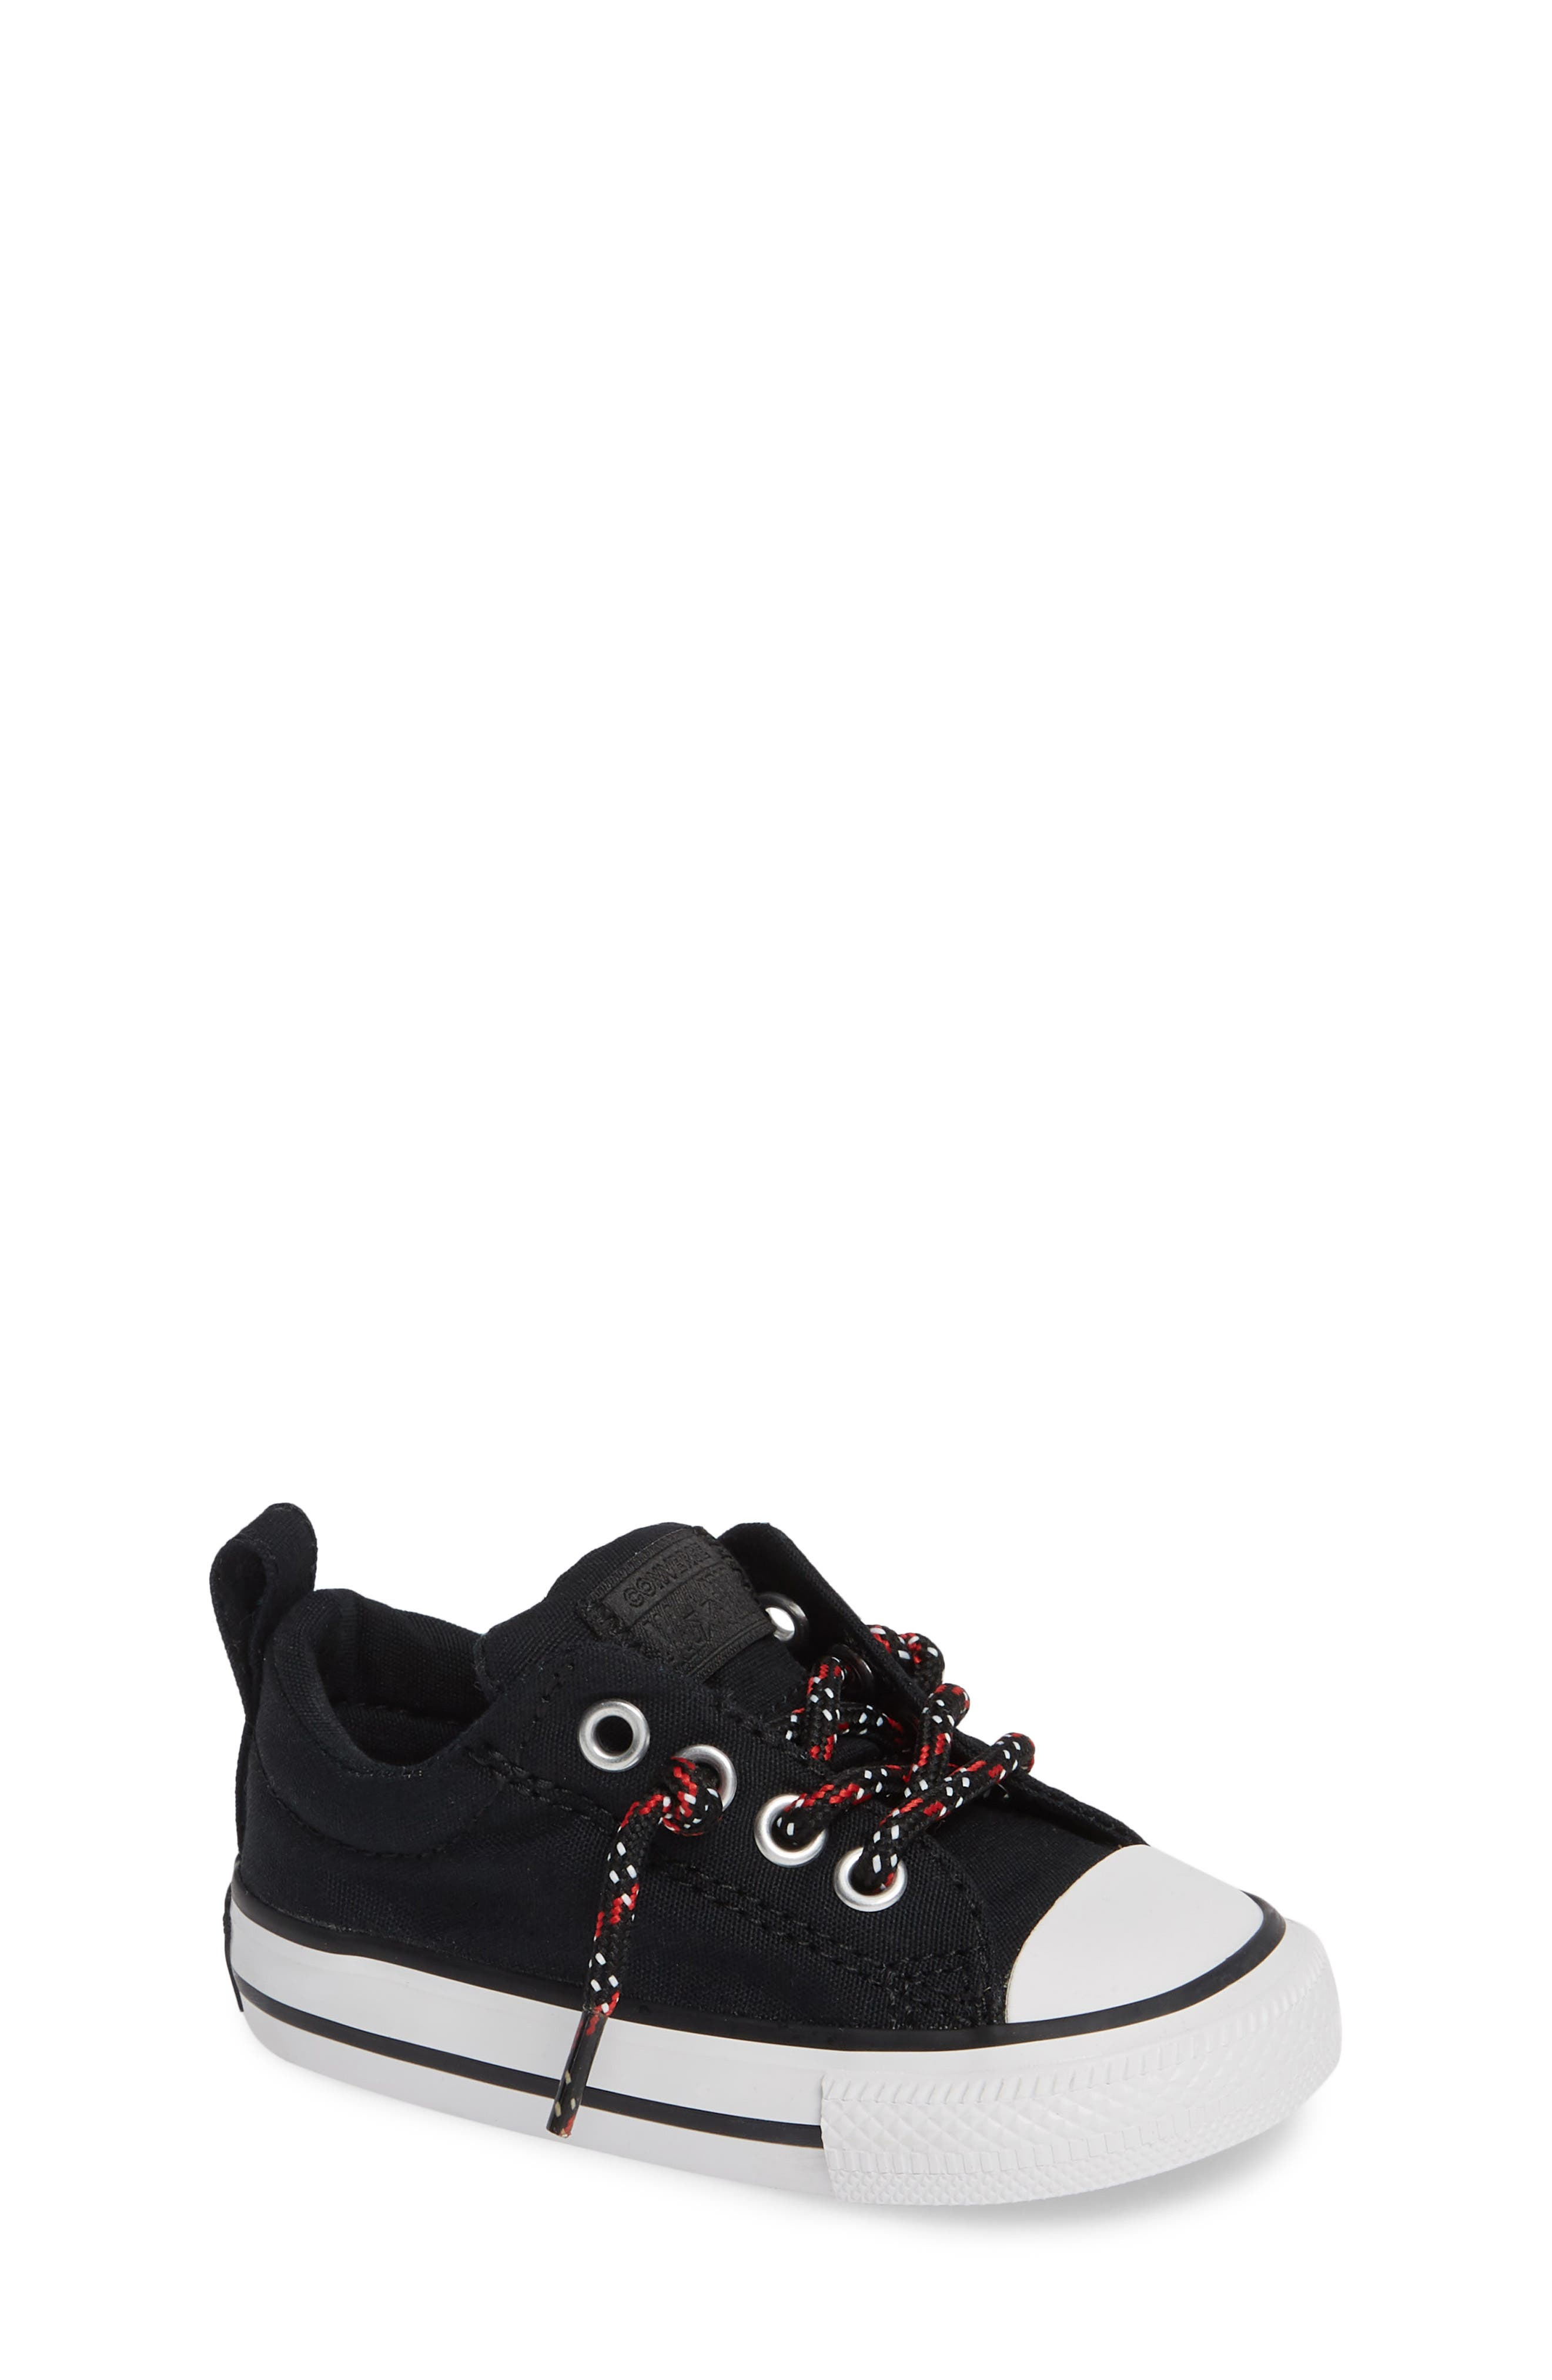 All Star<sup>®</sup> Graphite & Glitter Low Top Sneaker, Main, color, 002